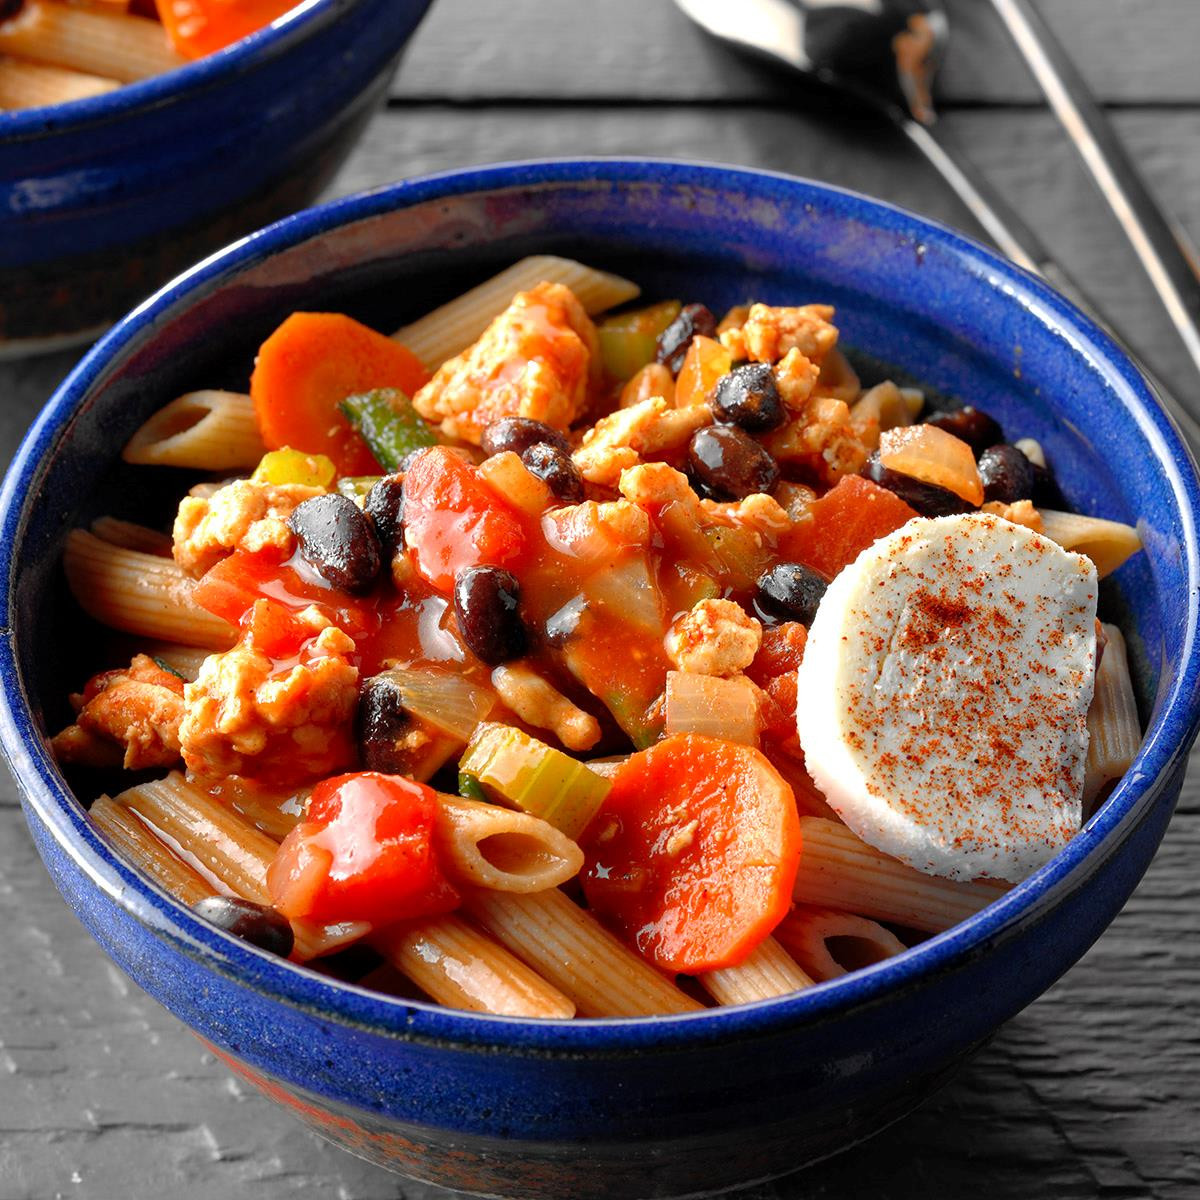 Taste Of Home Vegetarian Chili  Turkey Chili with Penne Recipe